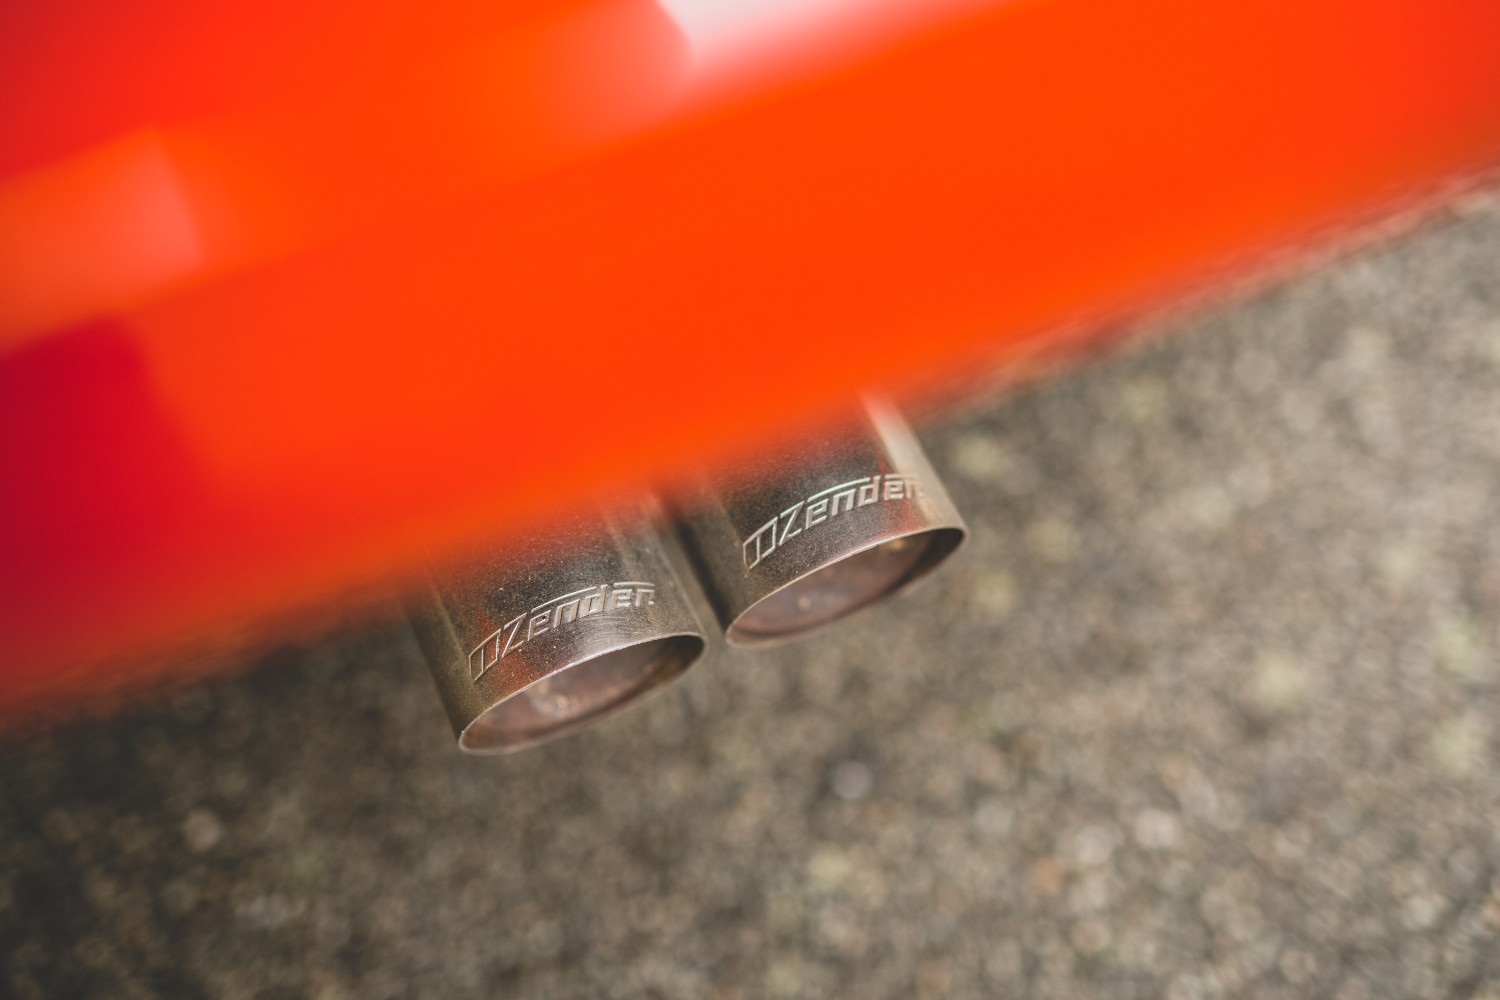 Alfa Romeo exhaust tips